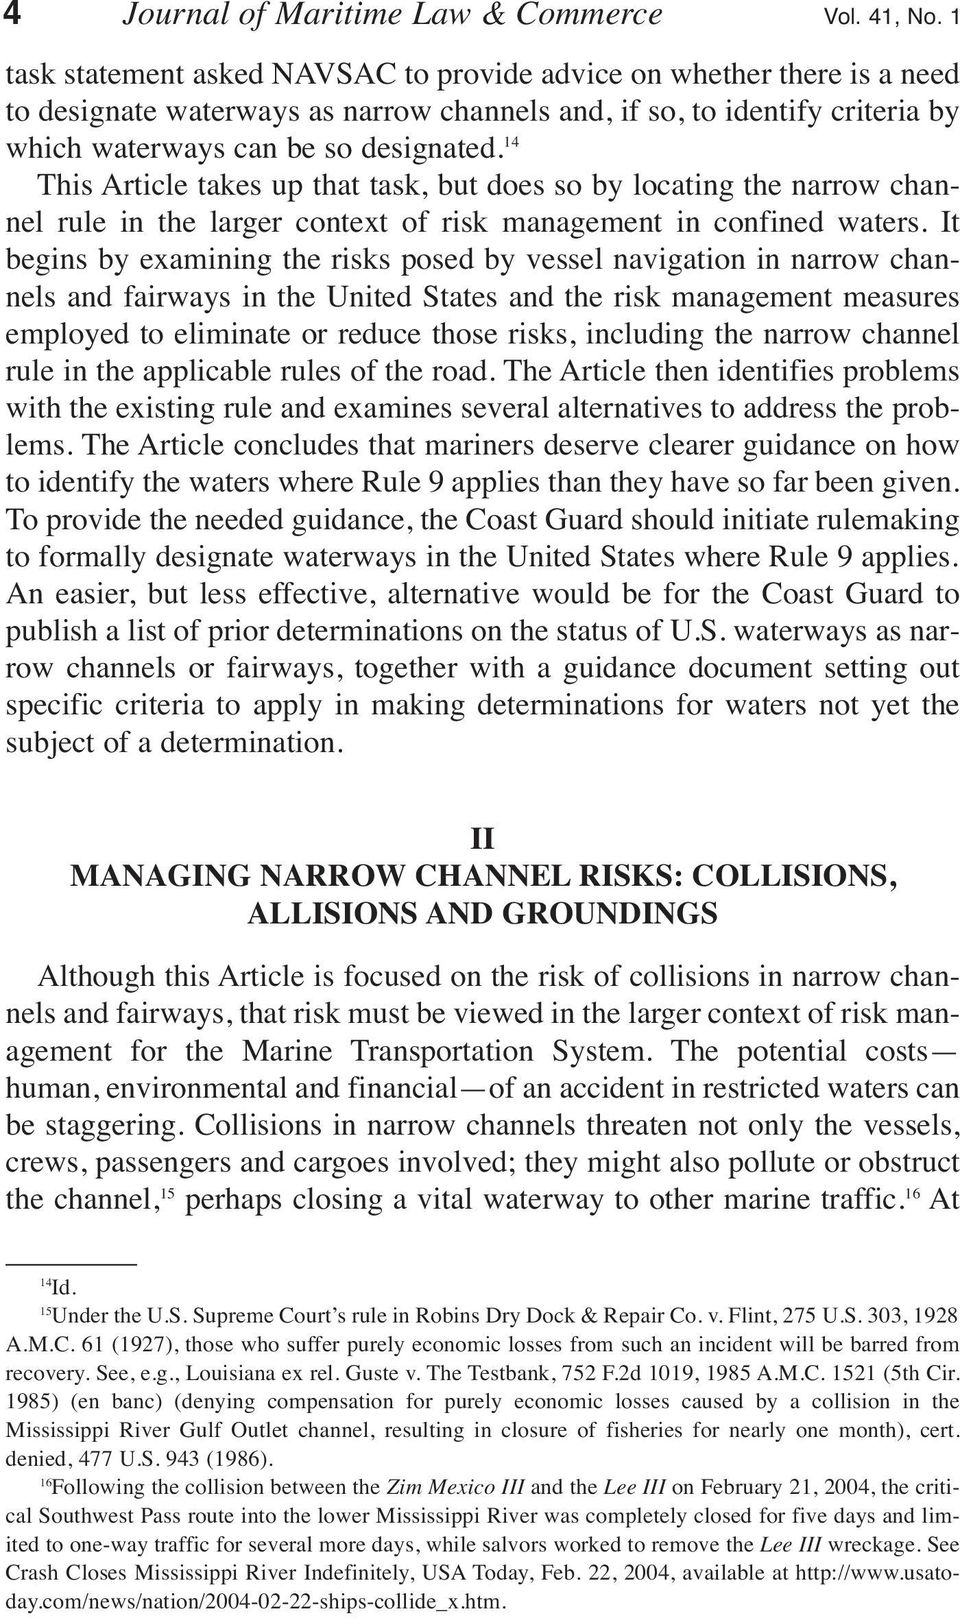 14 This Article takes up that task, but does so by locating the narrow channel rule in the larger context of risk management in confined waters.